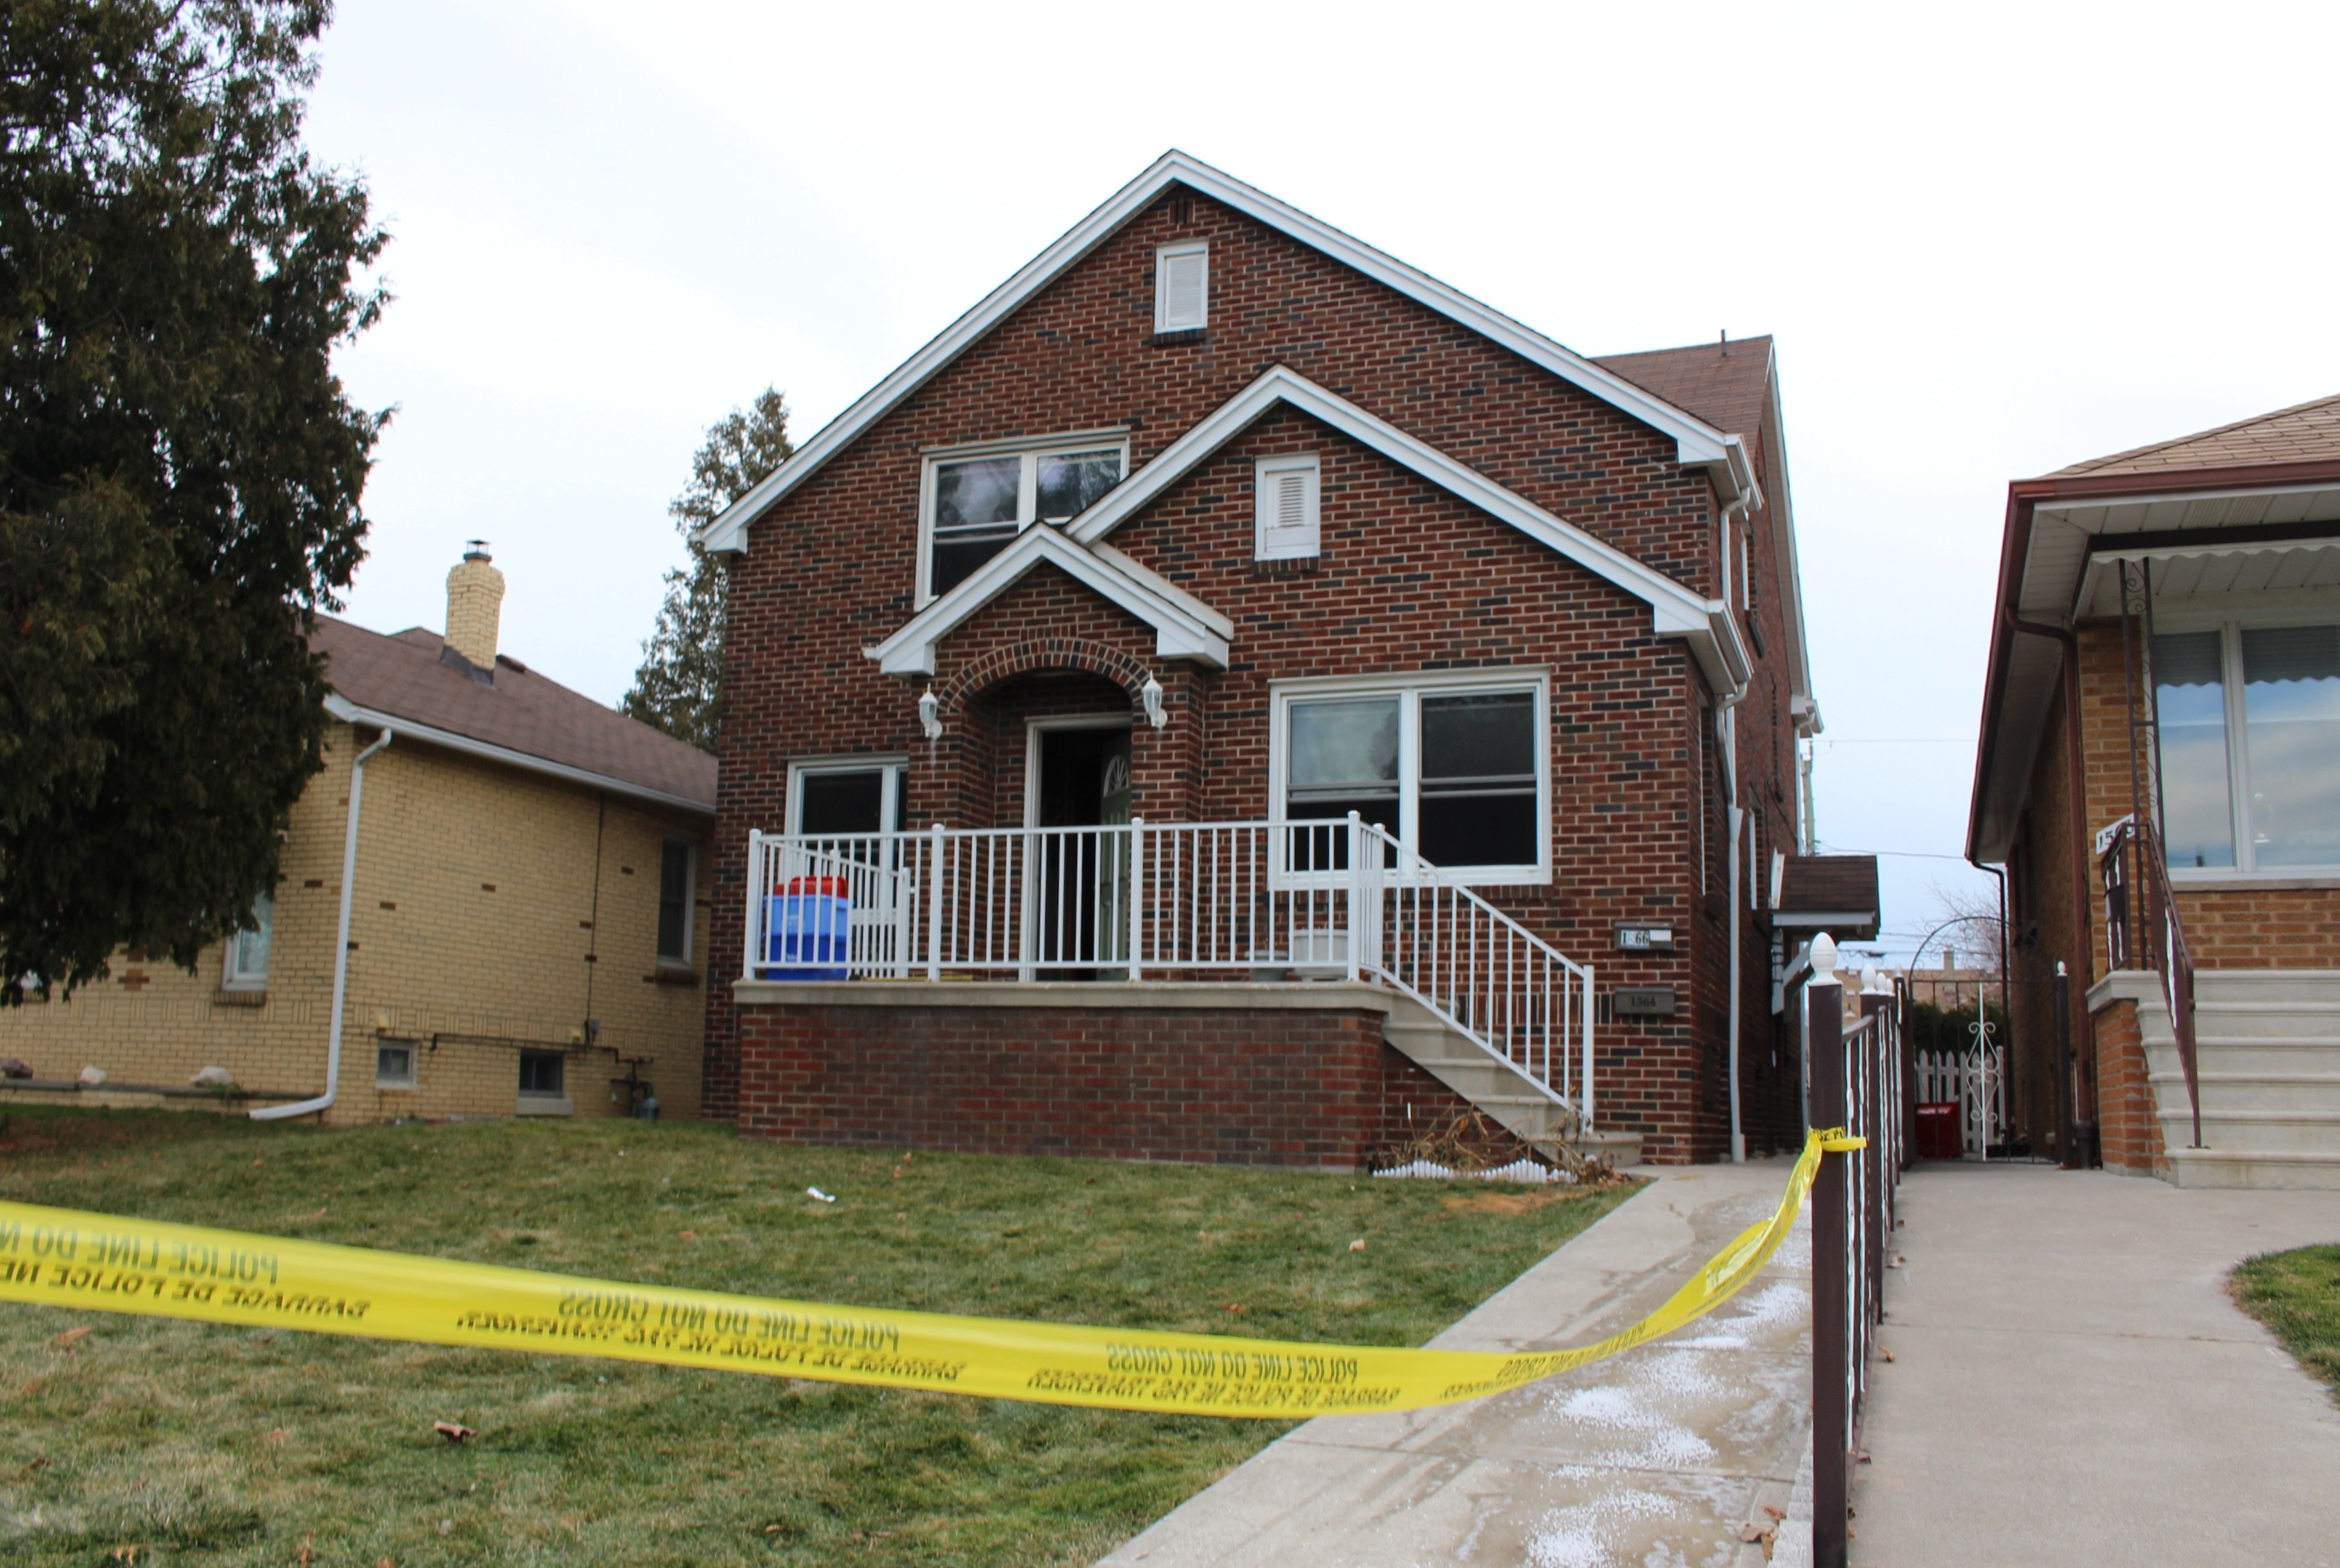 The duplex at 1566 Benjamin Ave., where Windsor police are investigating a death, December 11, 2014. (photo by Mike Vlasveld)